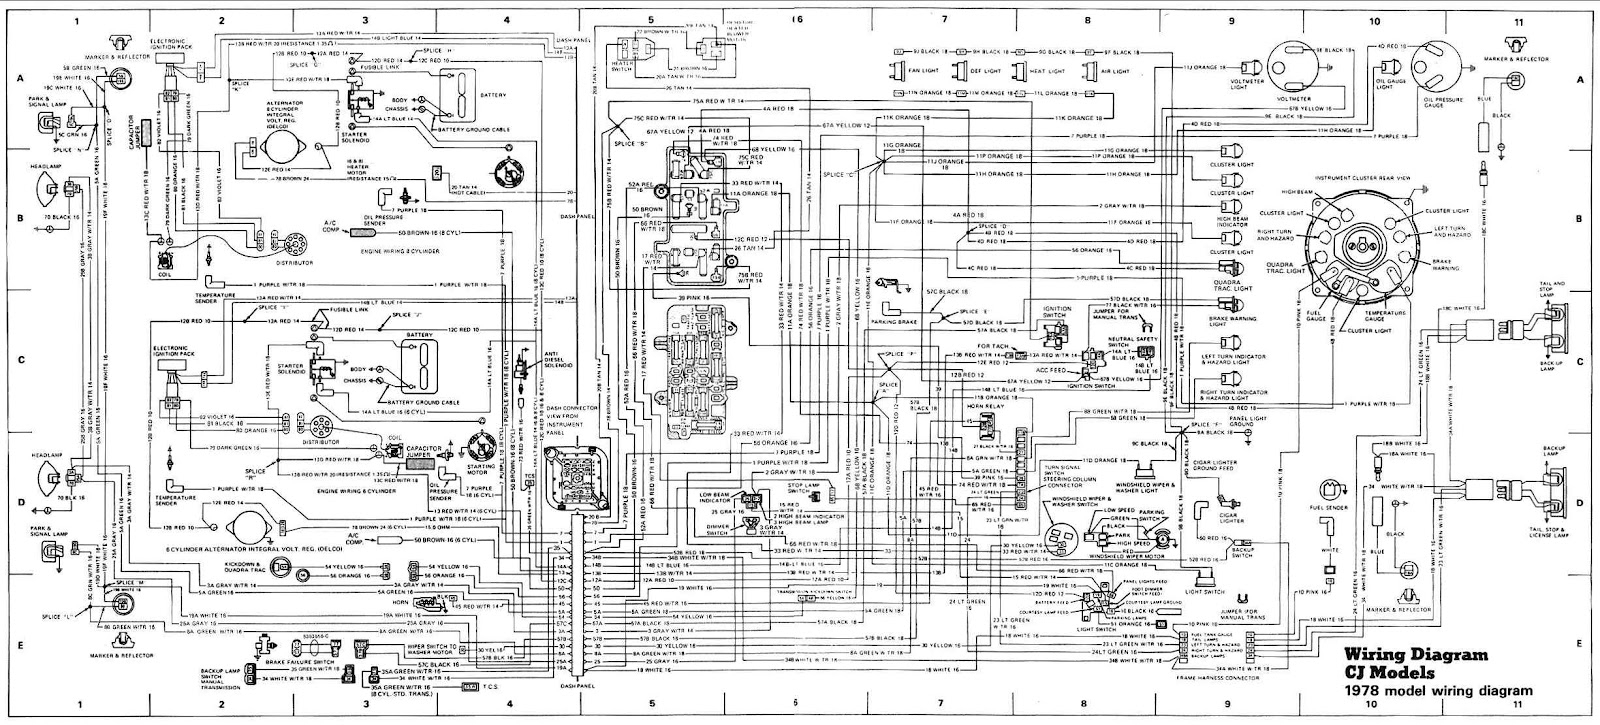 jeep grand cherokee wj stereo system wiring diagrams throughout 1998 jeep grand cherokee parts diagram wiring diagram for jeep grand cherokee wiring diagram simonand 2000 jeep grand cherokee laredo wiring diagram at pacquiaovsvargaslive.co